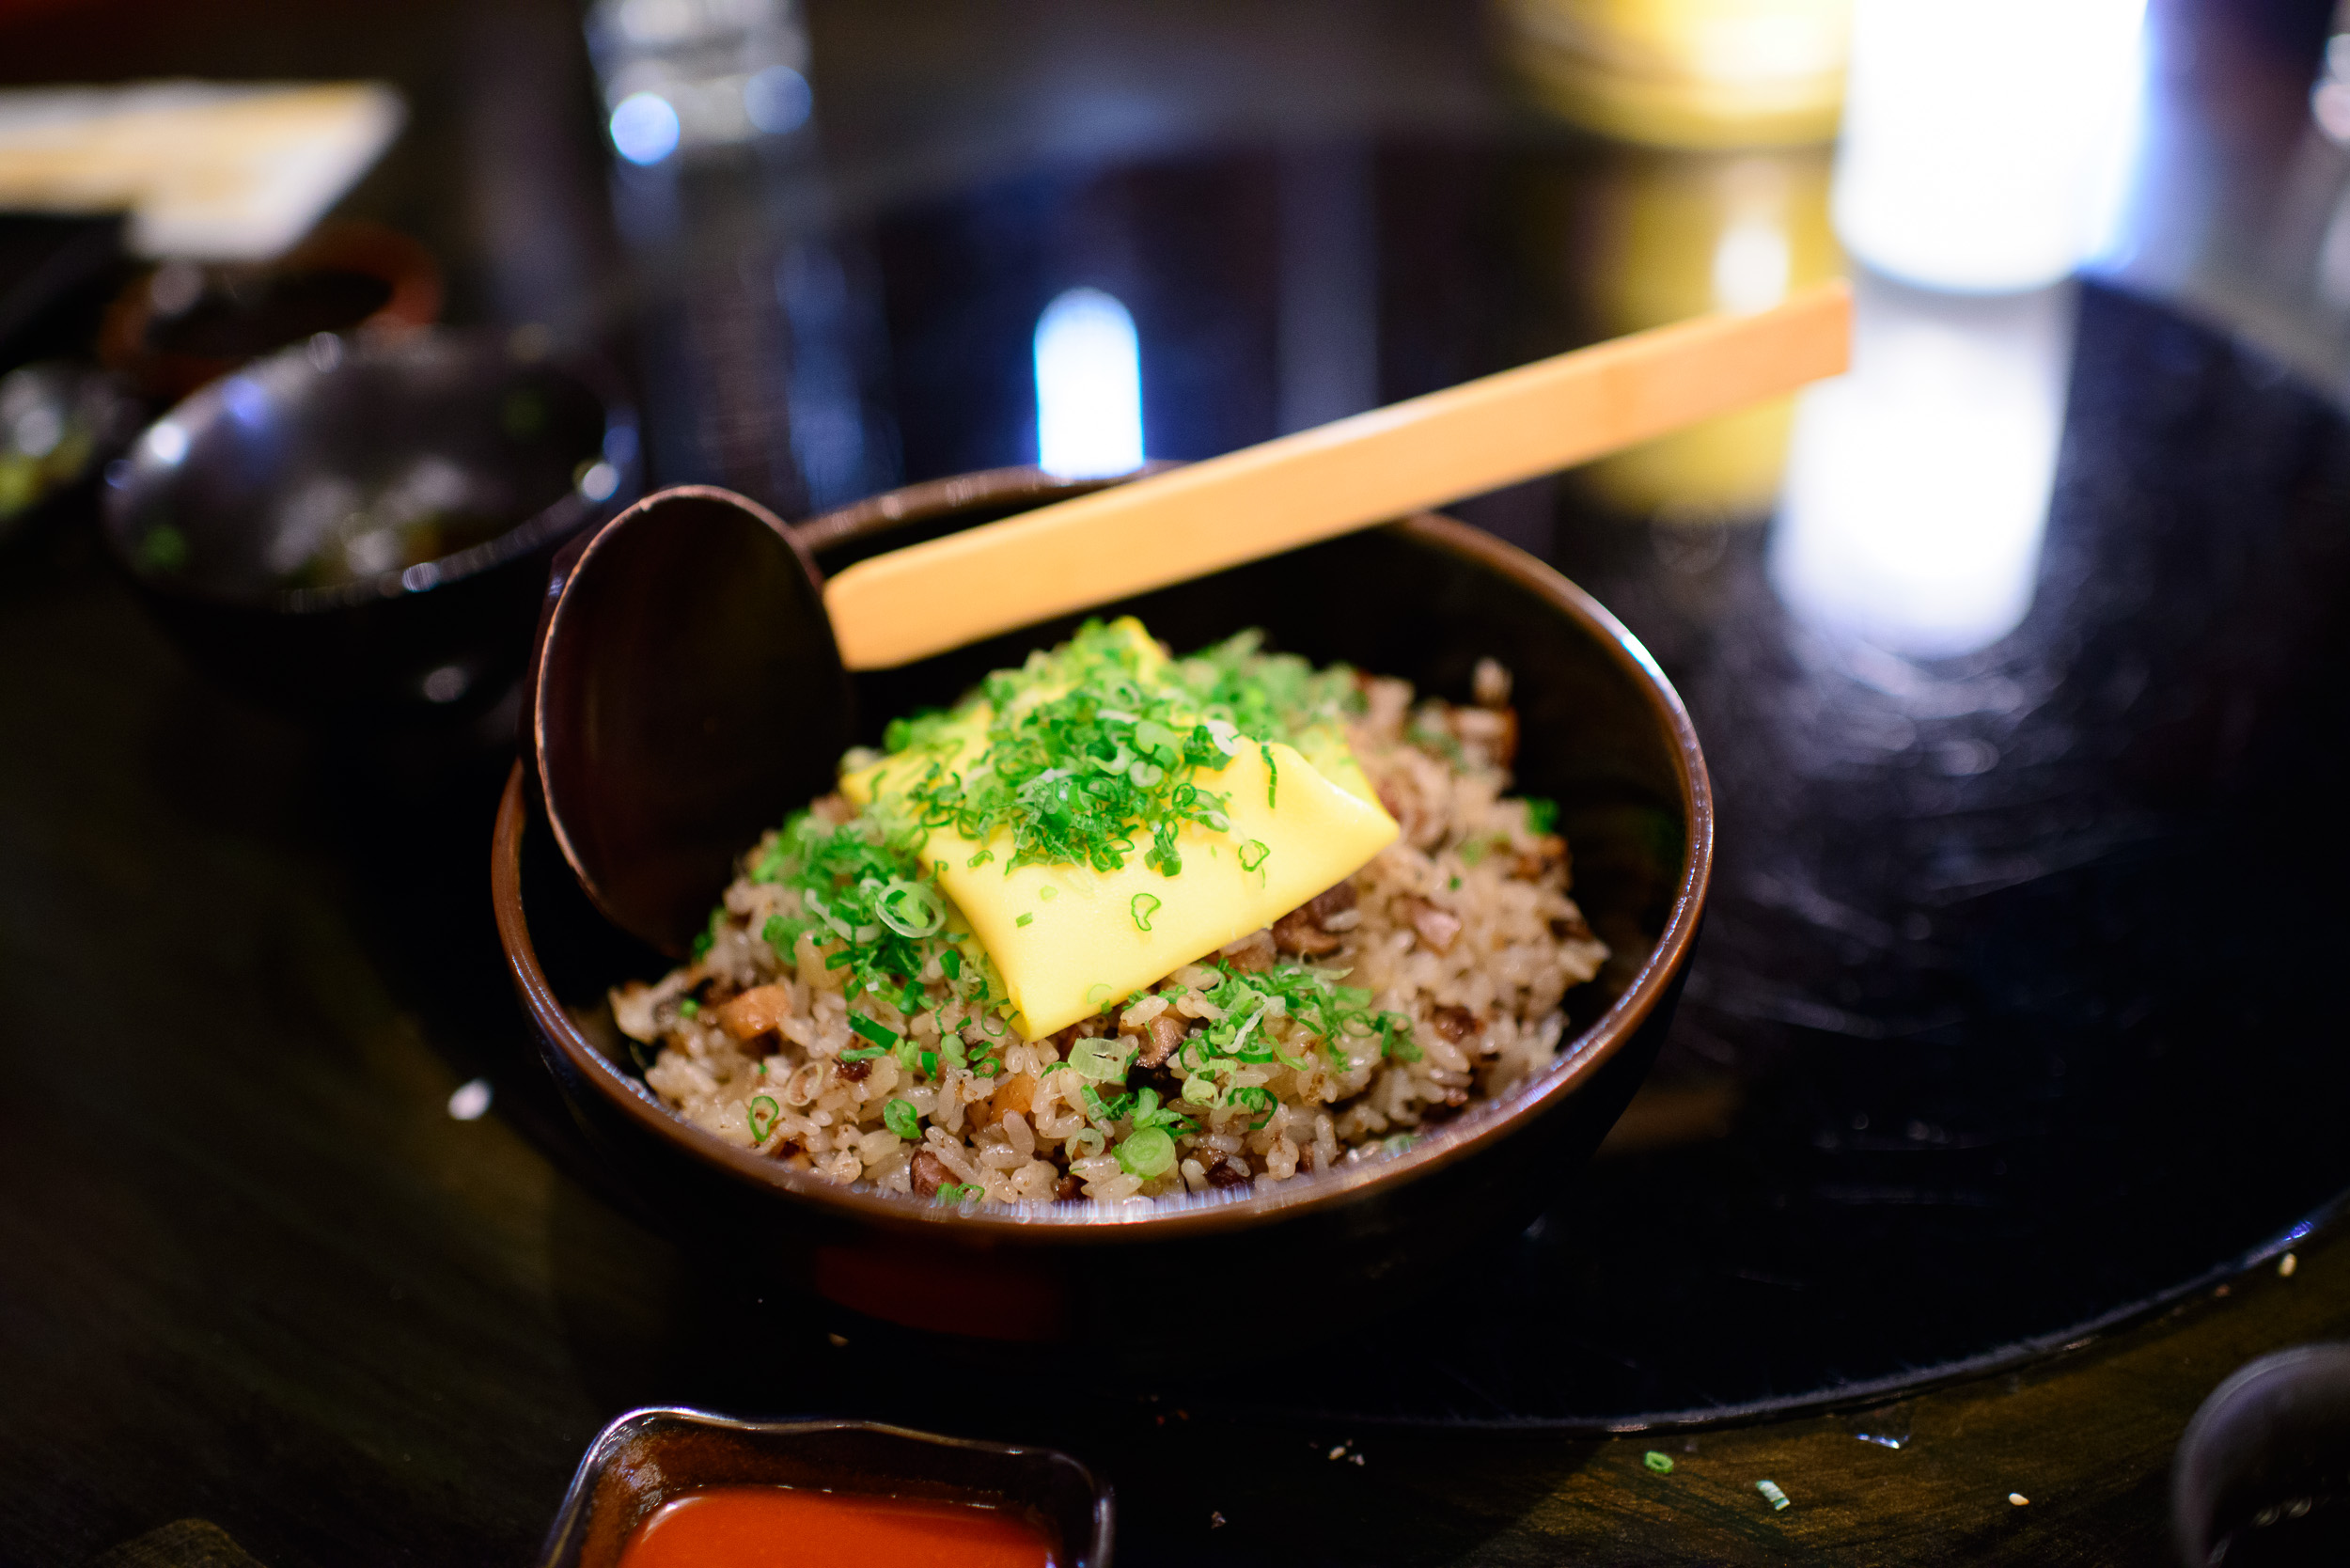 Bone marrow and oxtail fried rice